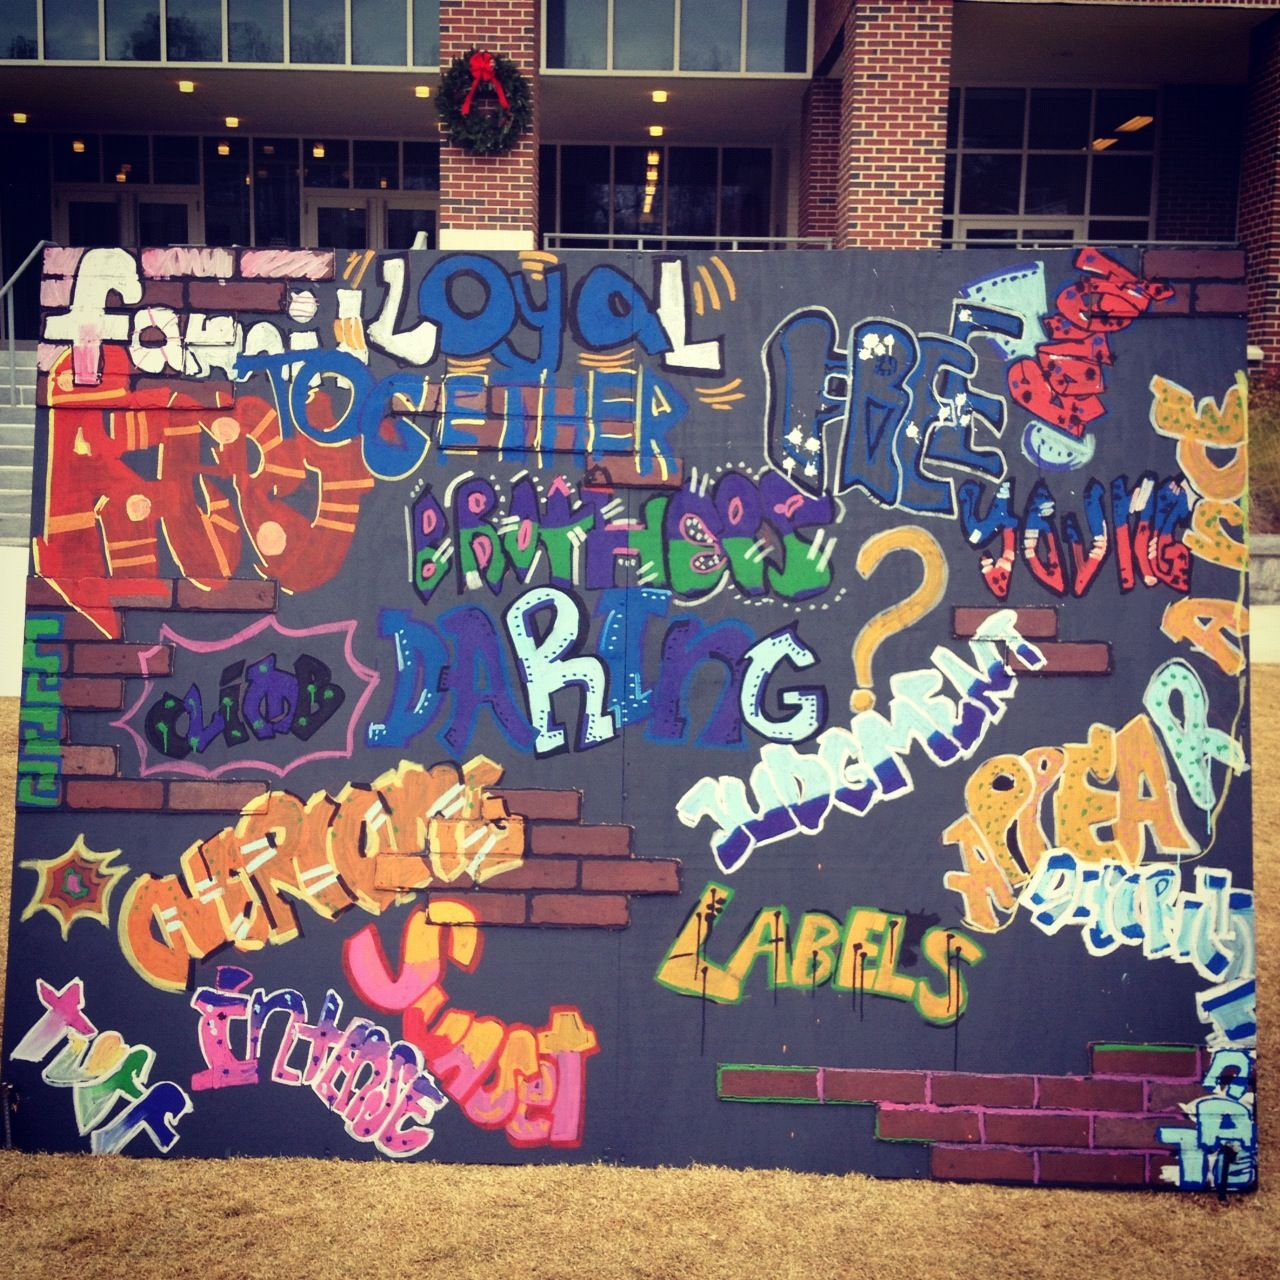 Graffiti wall rubric - Middle School Graffiti Wall Expresses Literary Themes From The Outsiders